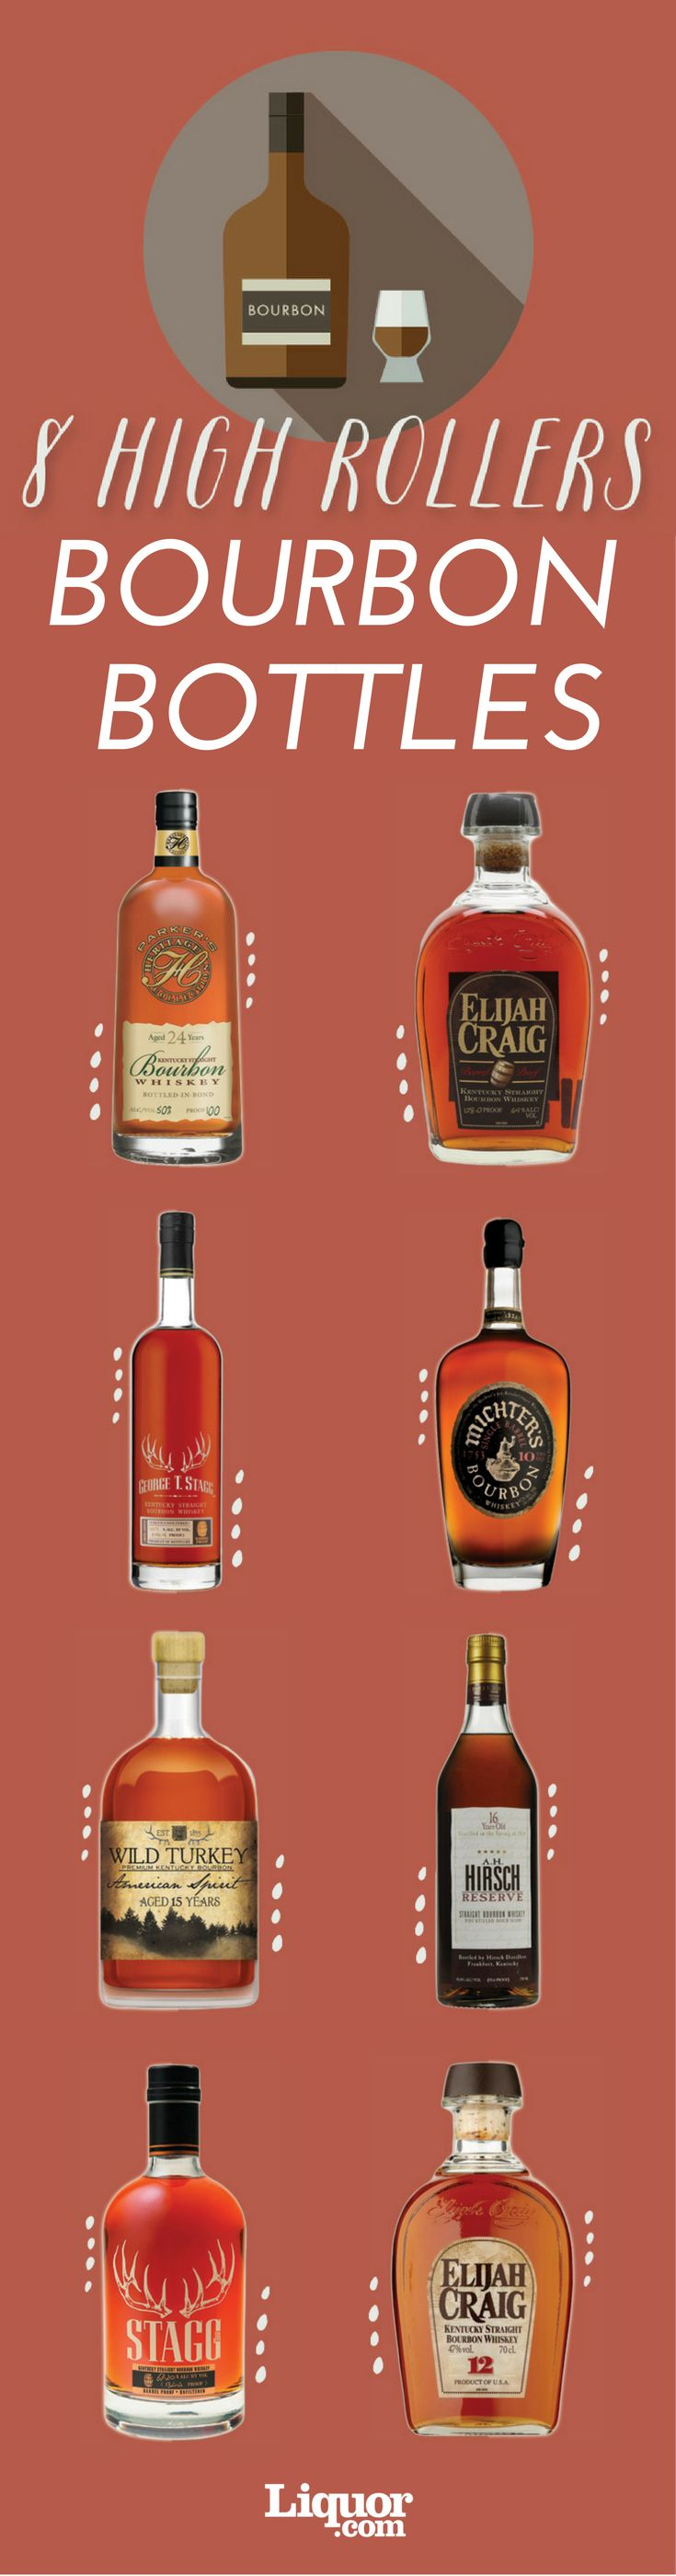 You know who knows best which bottles to buy for holiday gifting? The people who pour and sell drinks—that's who. For 2016, we asked dozens of top bartending and spirits industry professionals to tell us which #bourbon bottles they love and why.